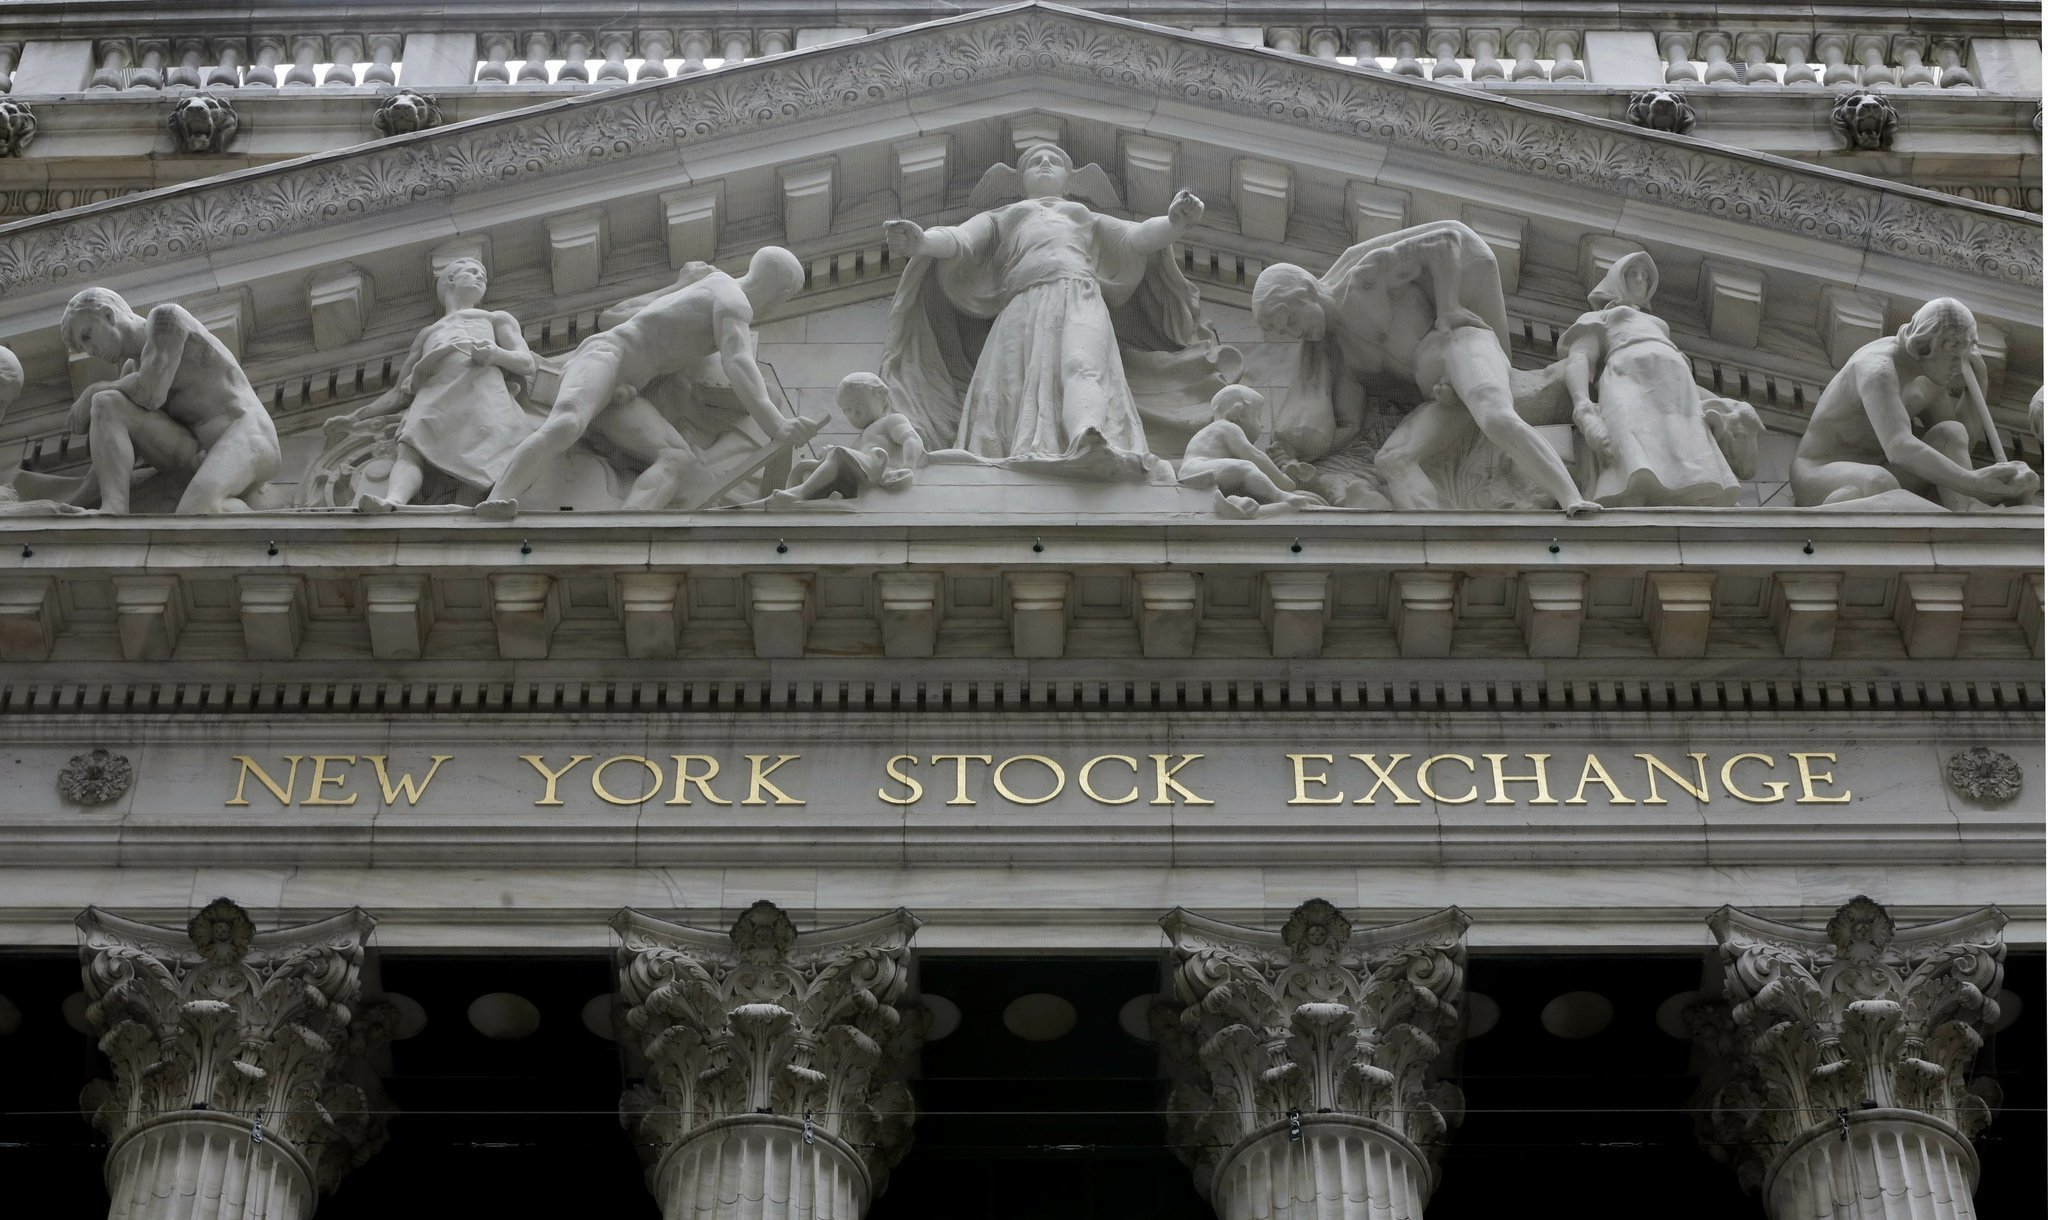 American stock market efficient, worth celebrating